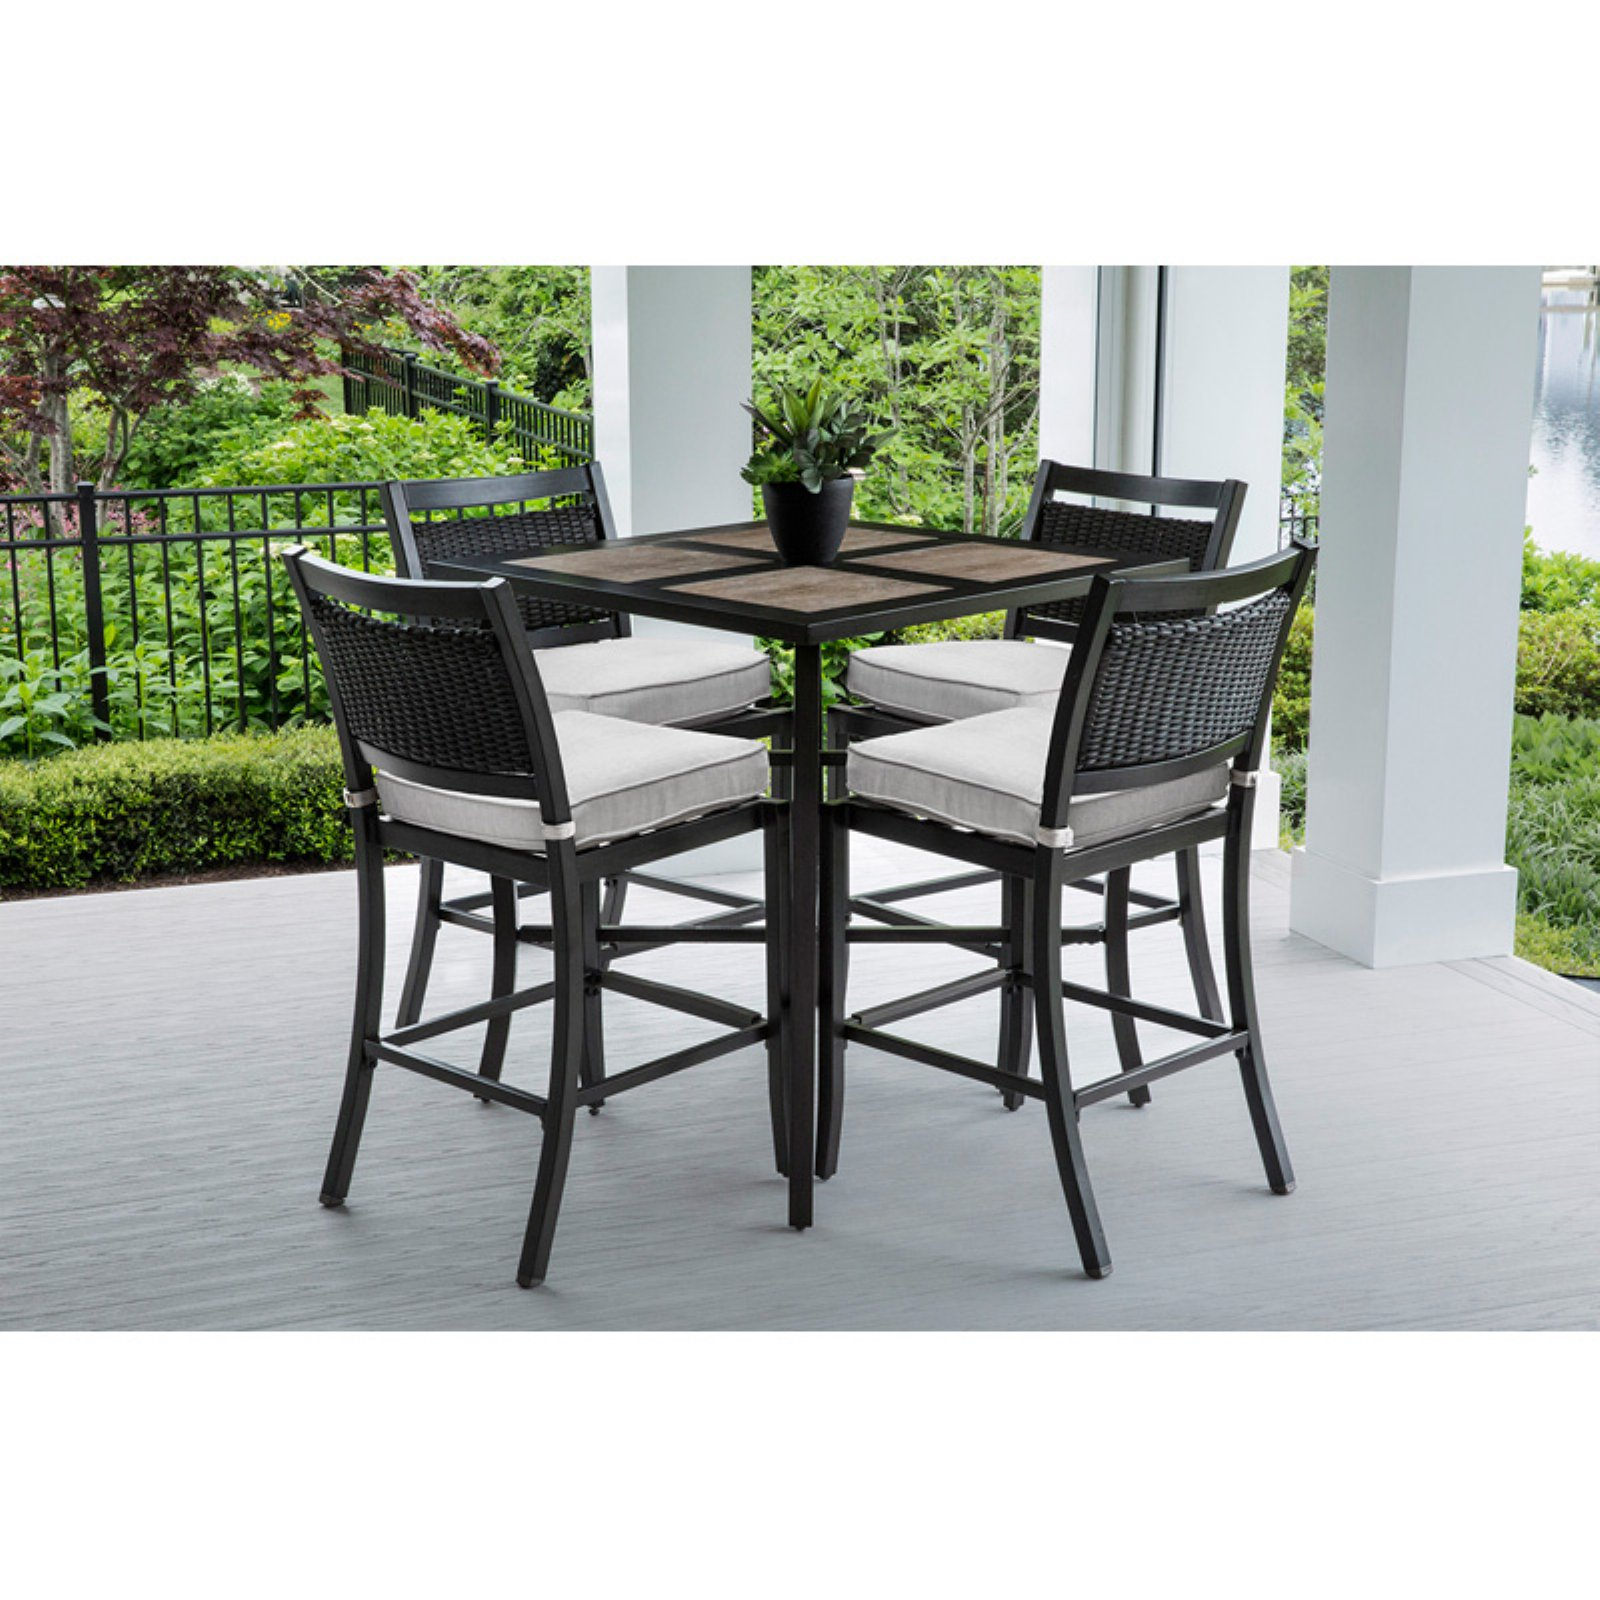 Oakland Living Wood and Aluminum 5 Piece Bar Height Patio Dining Set with Sunbrella Cushions